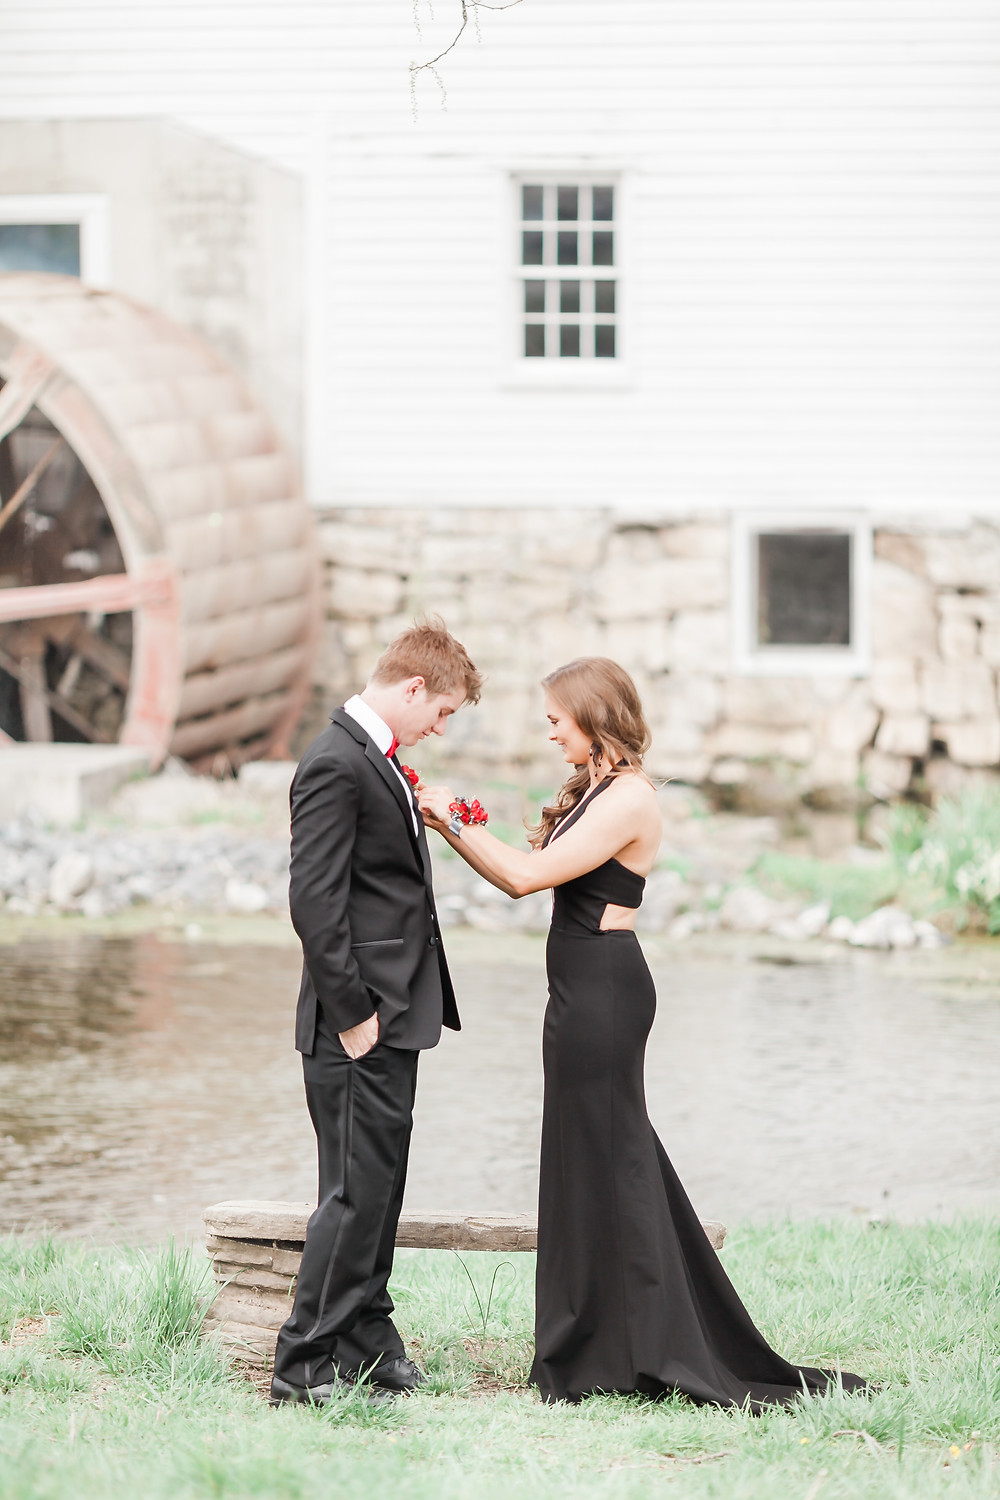 Silver Lake prom photo session 3